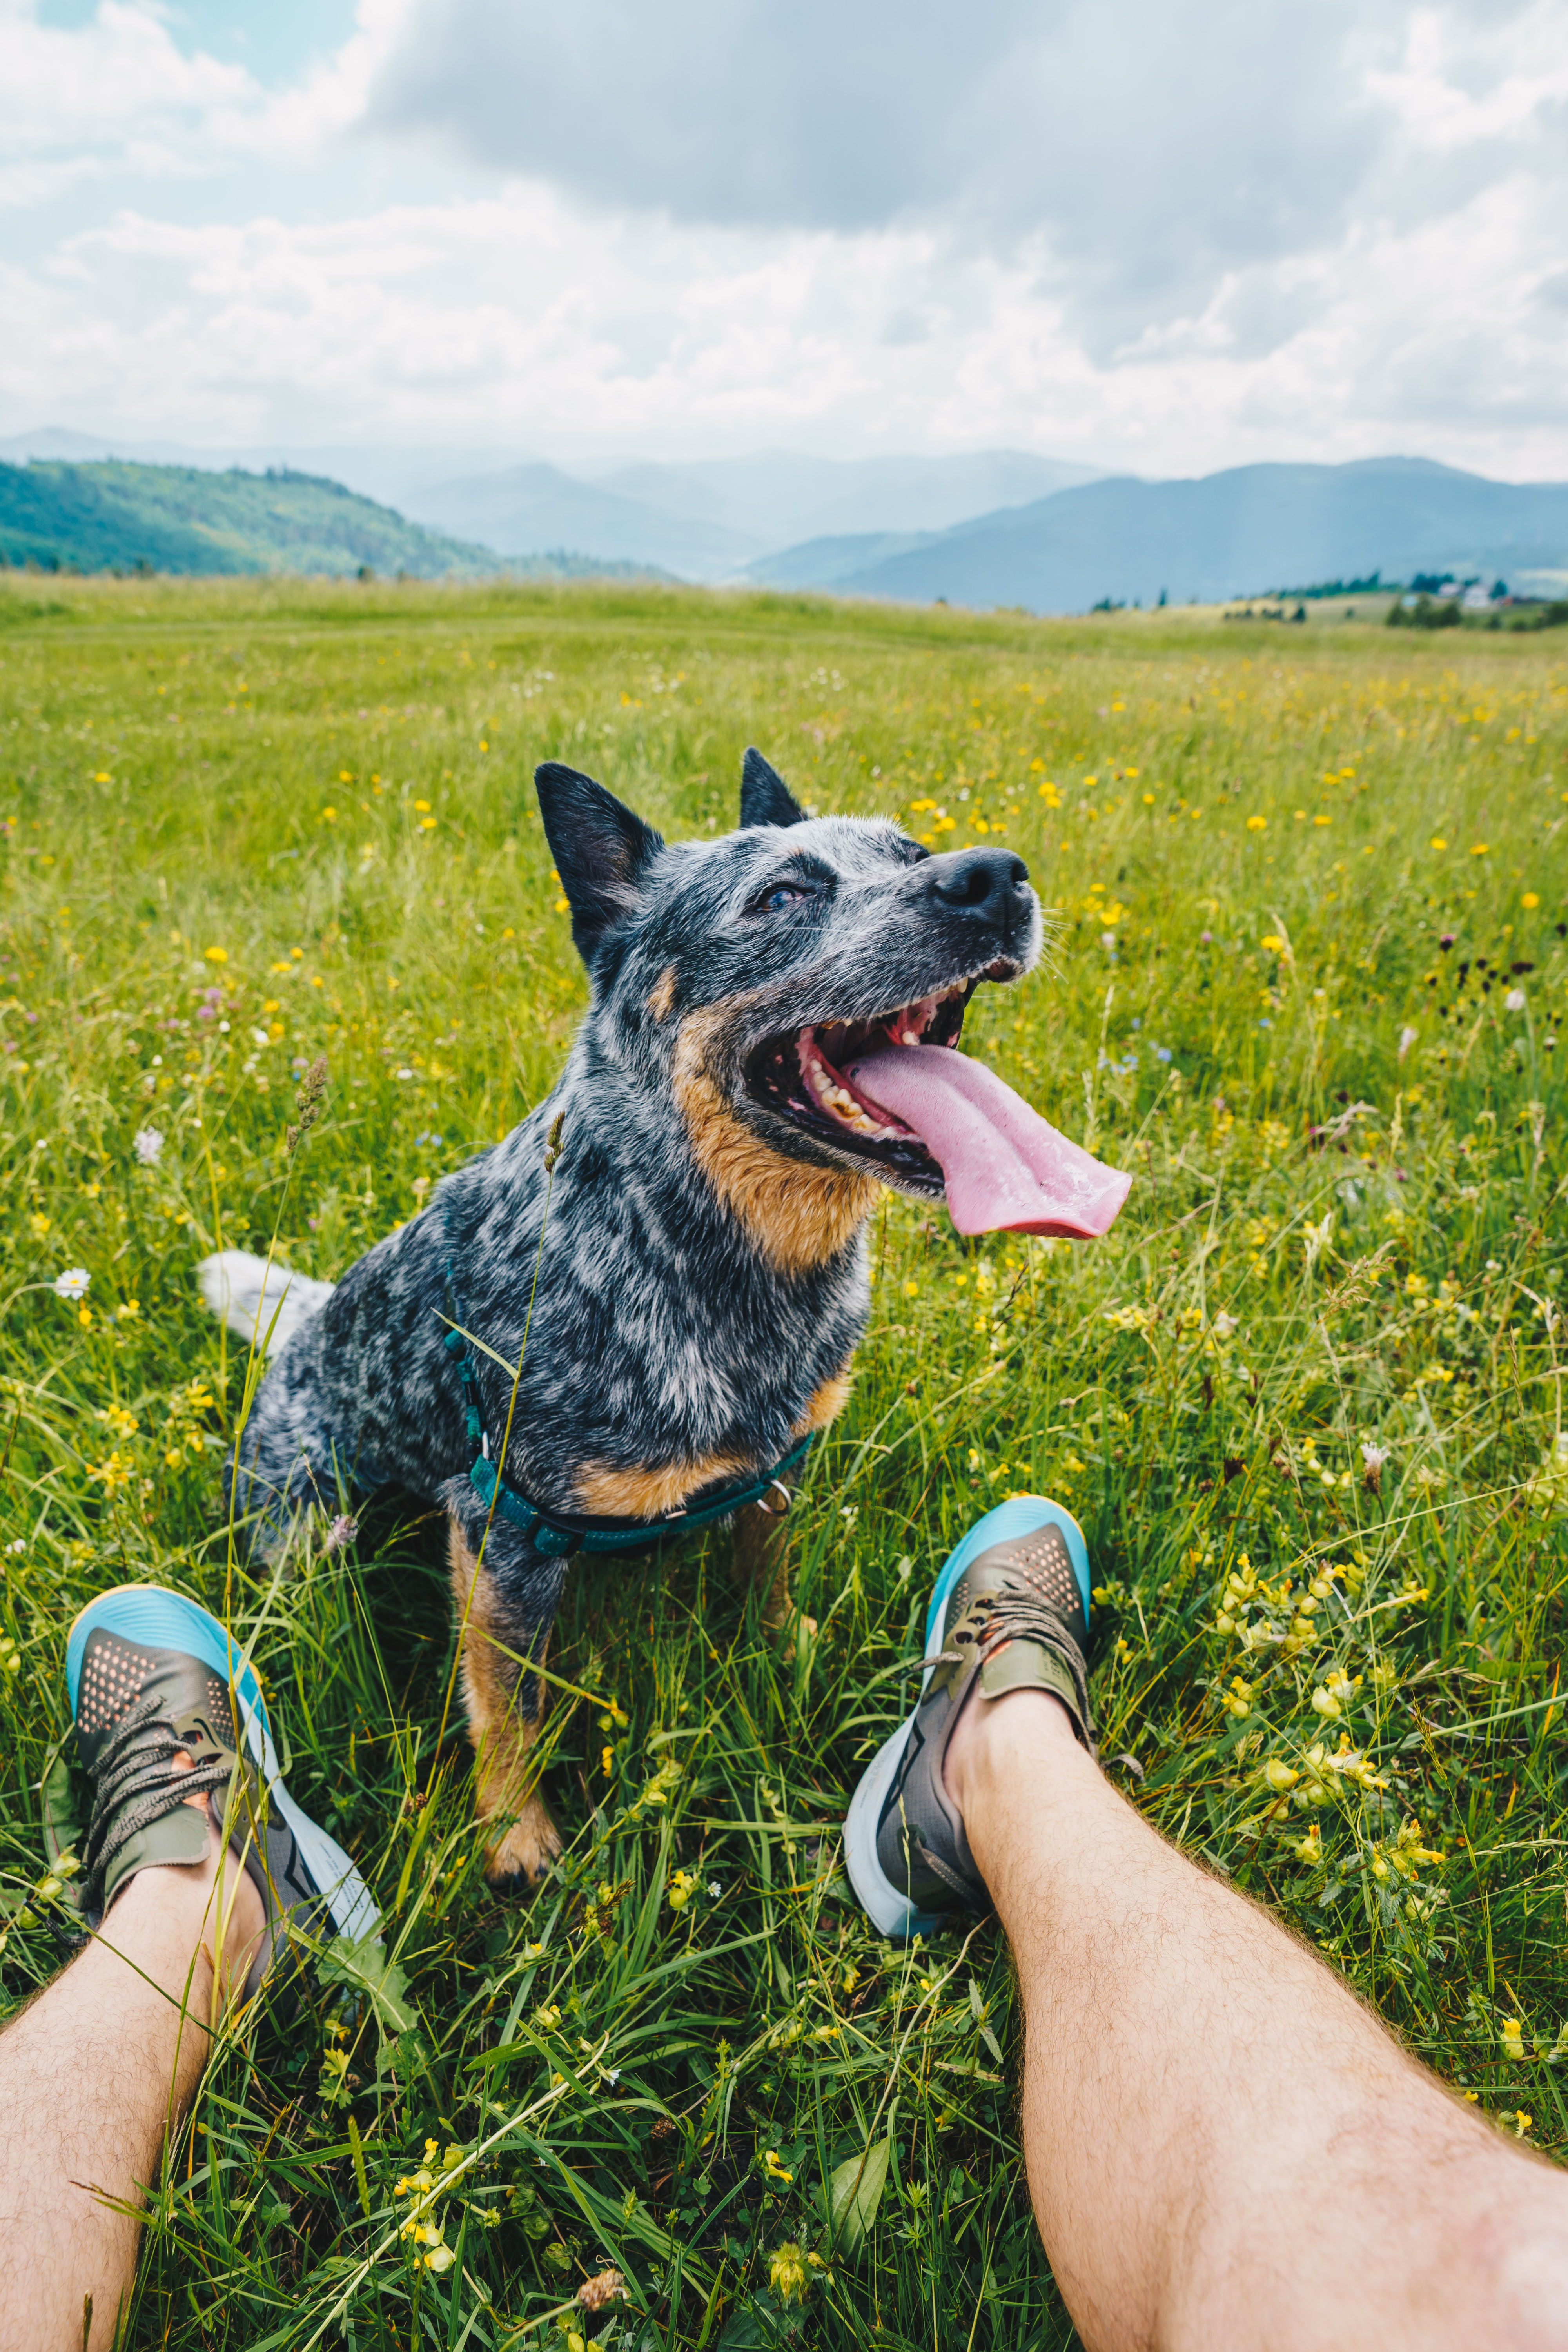 146347 download wallpaper Animals, Dog, Pet, Protruding Tongue, Tongue Stuck Out, Friends, Legs screensavers and pictures for free